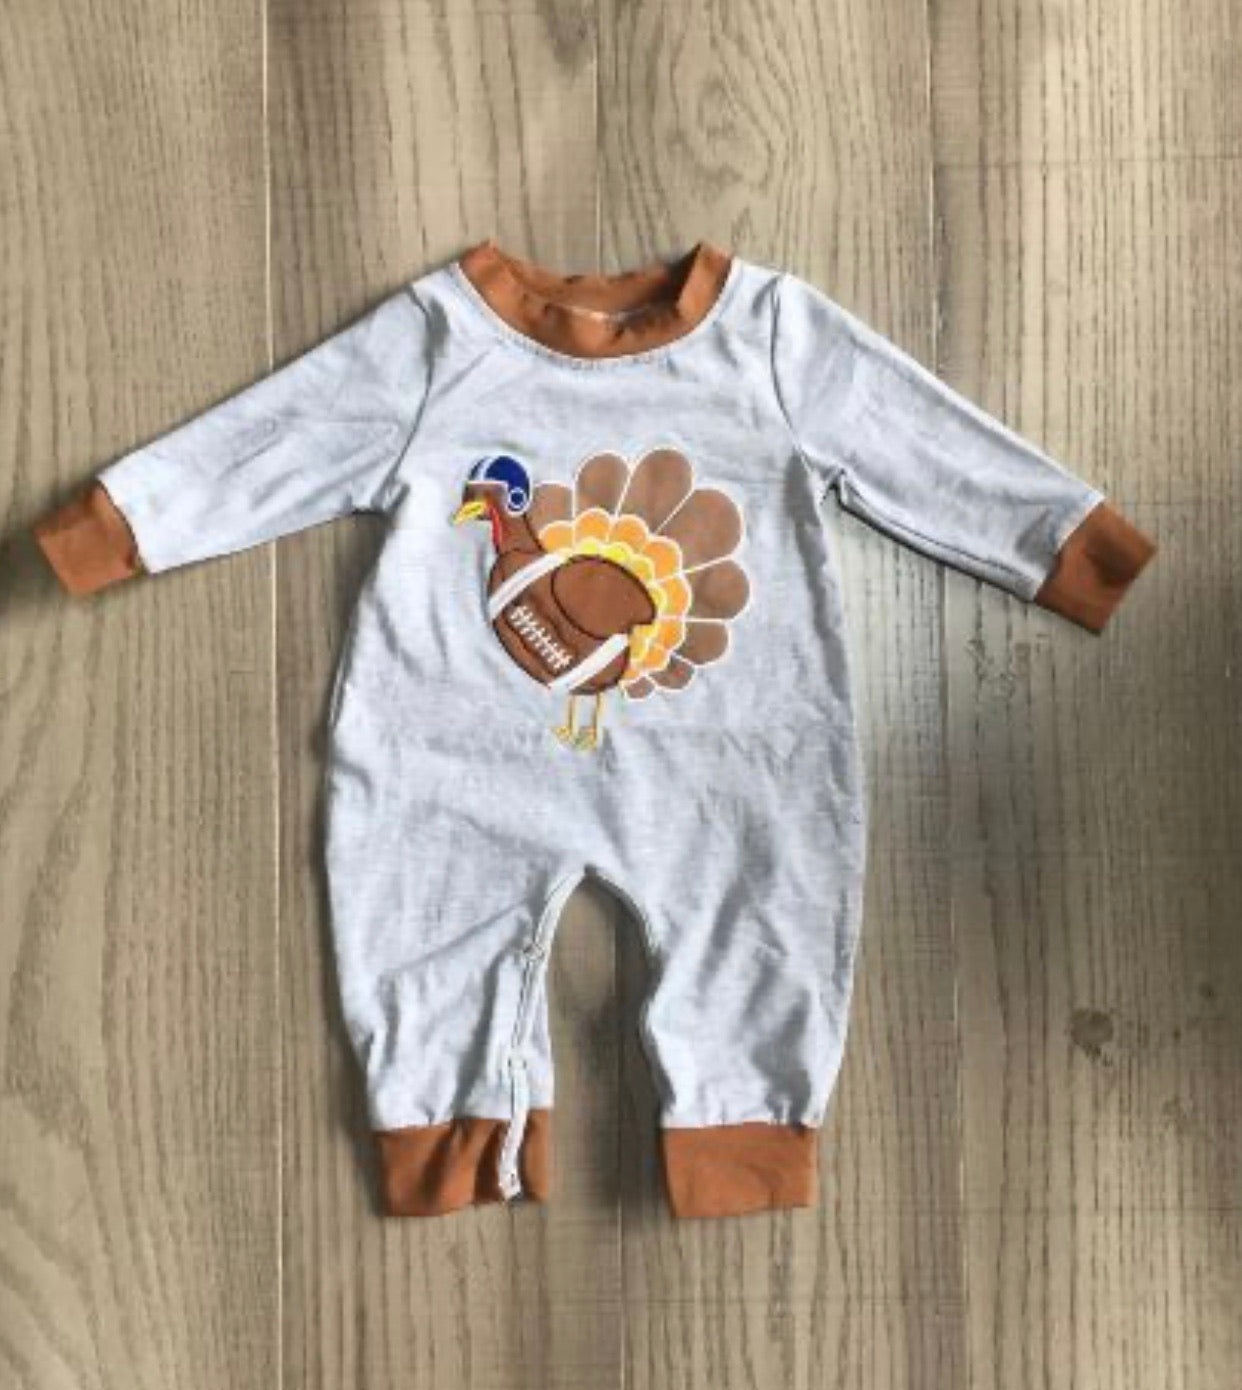 Tackle turkey romper